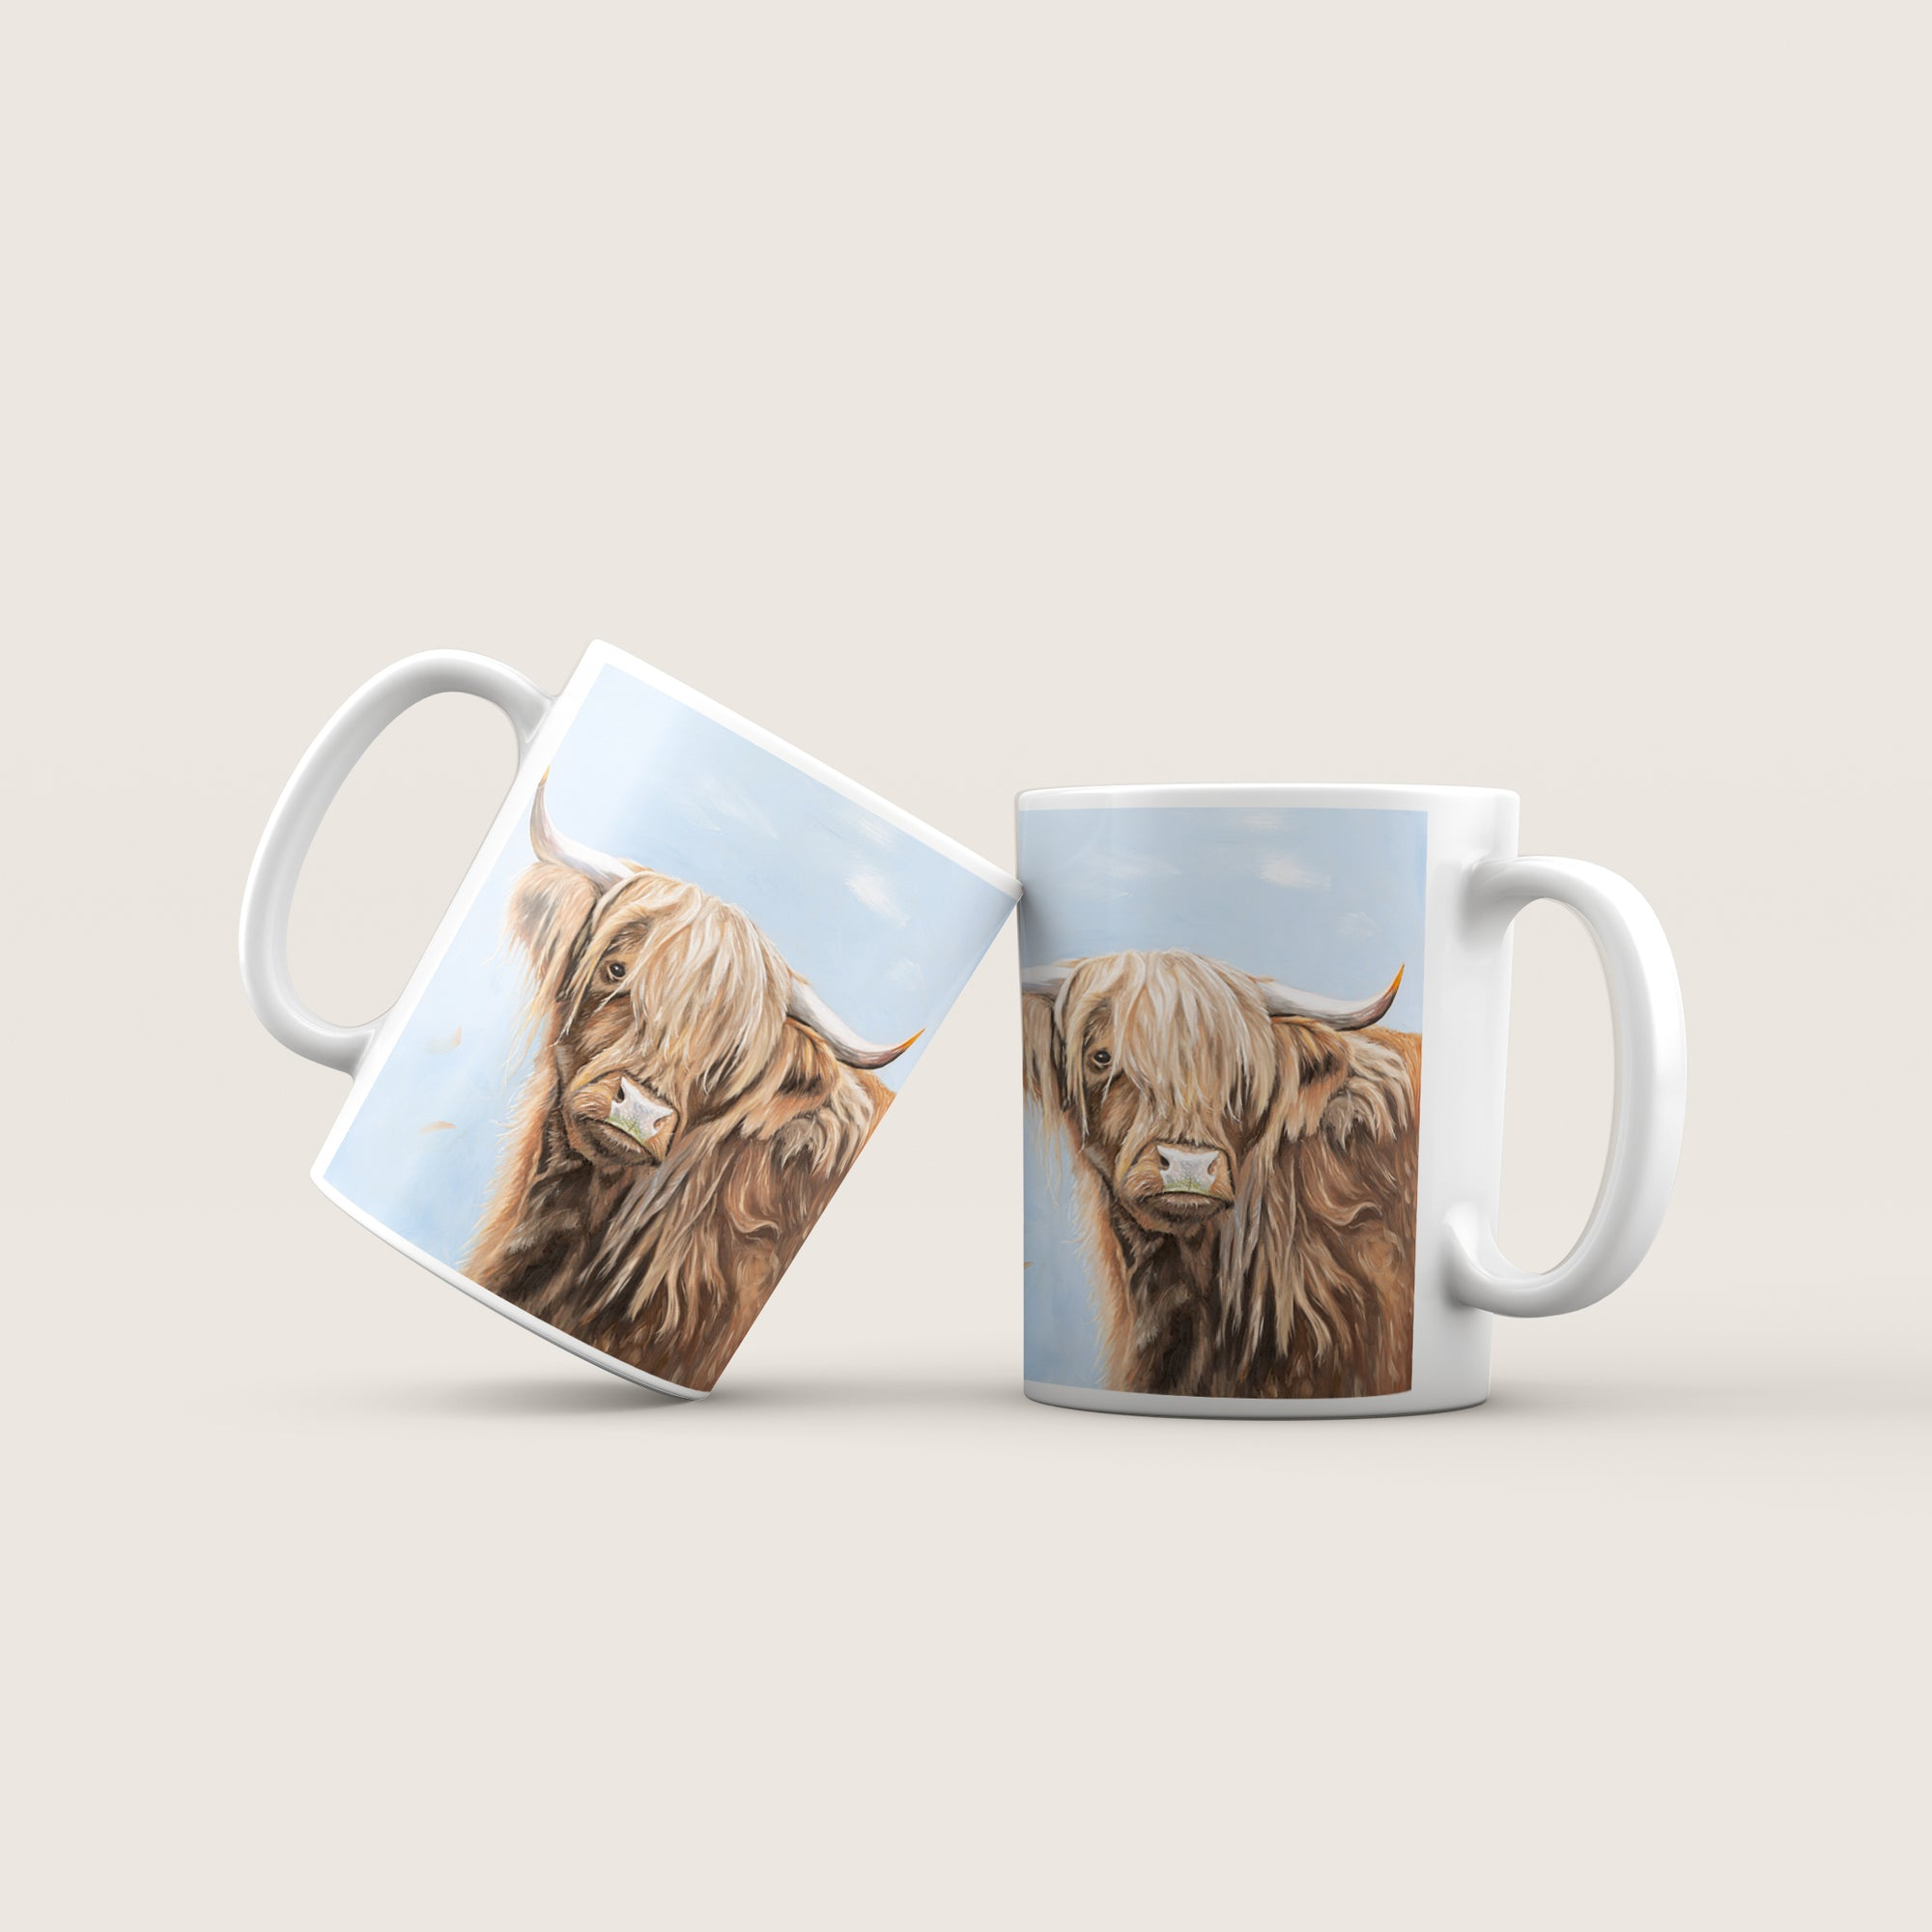 Highland cow mug - Fern